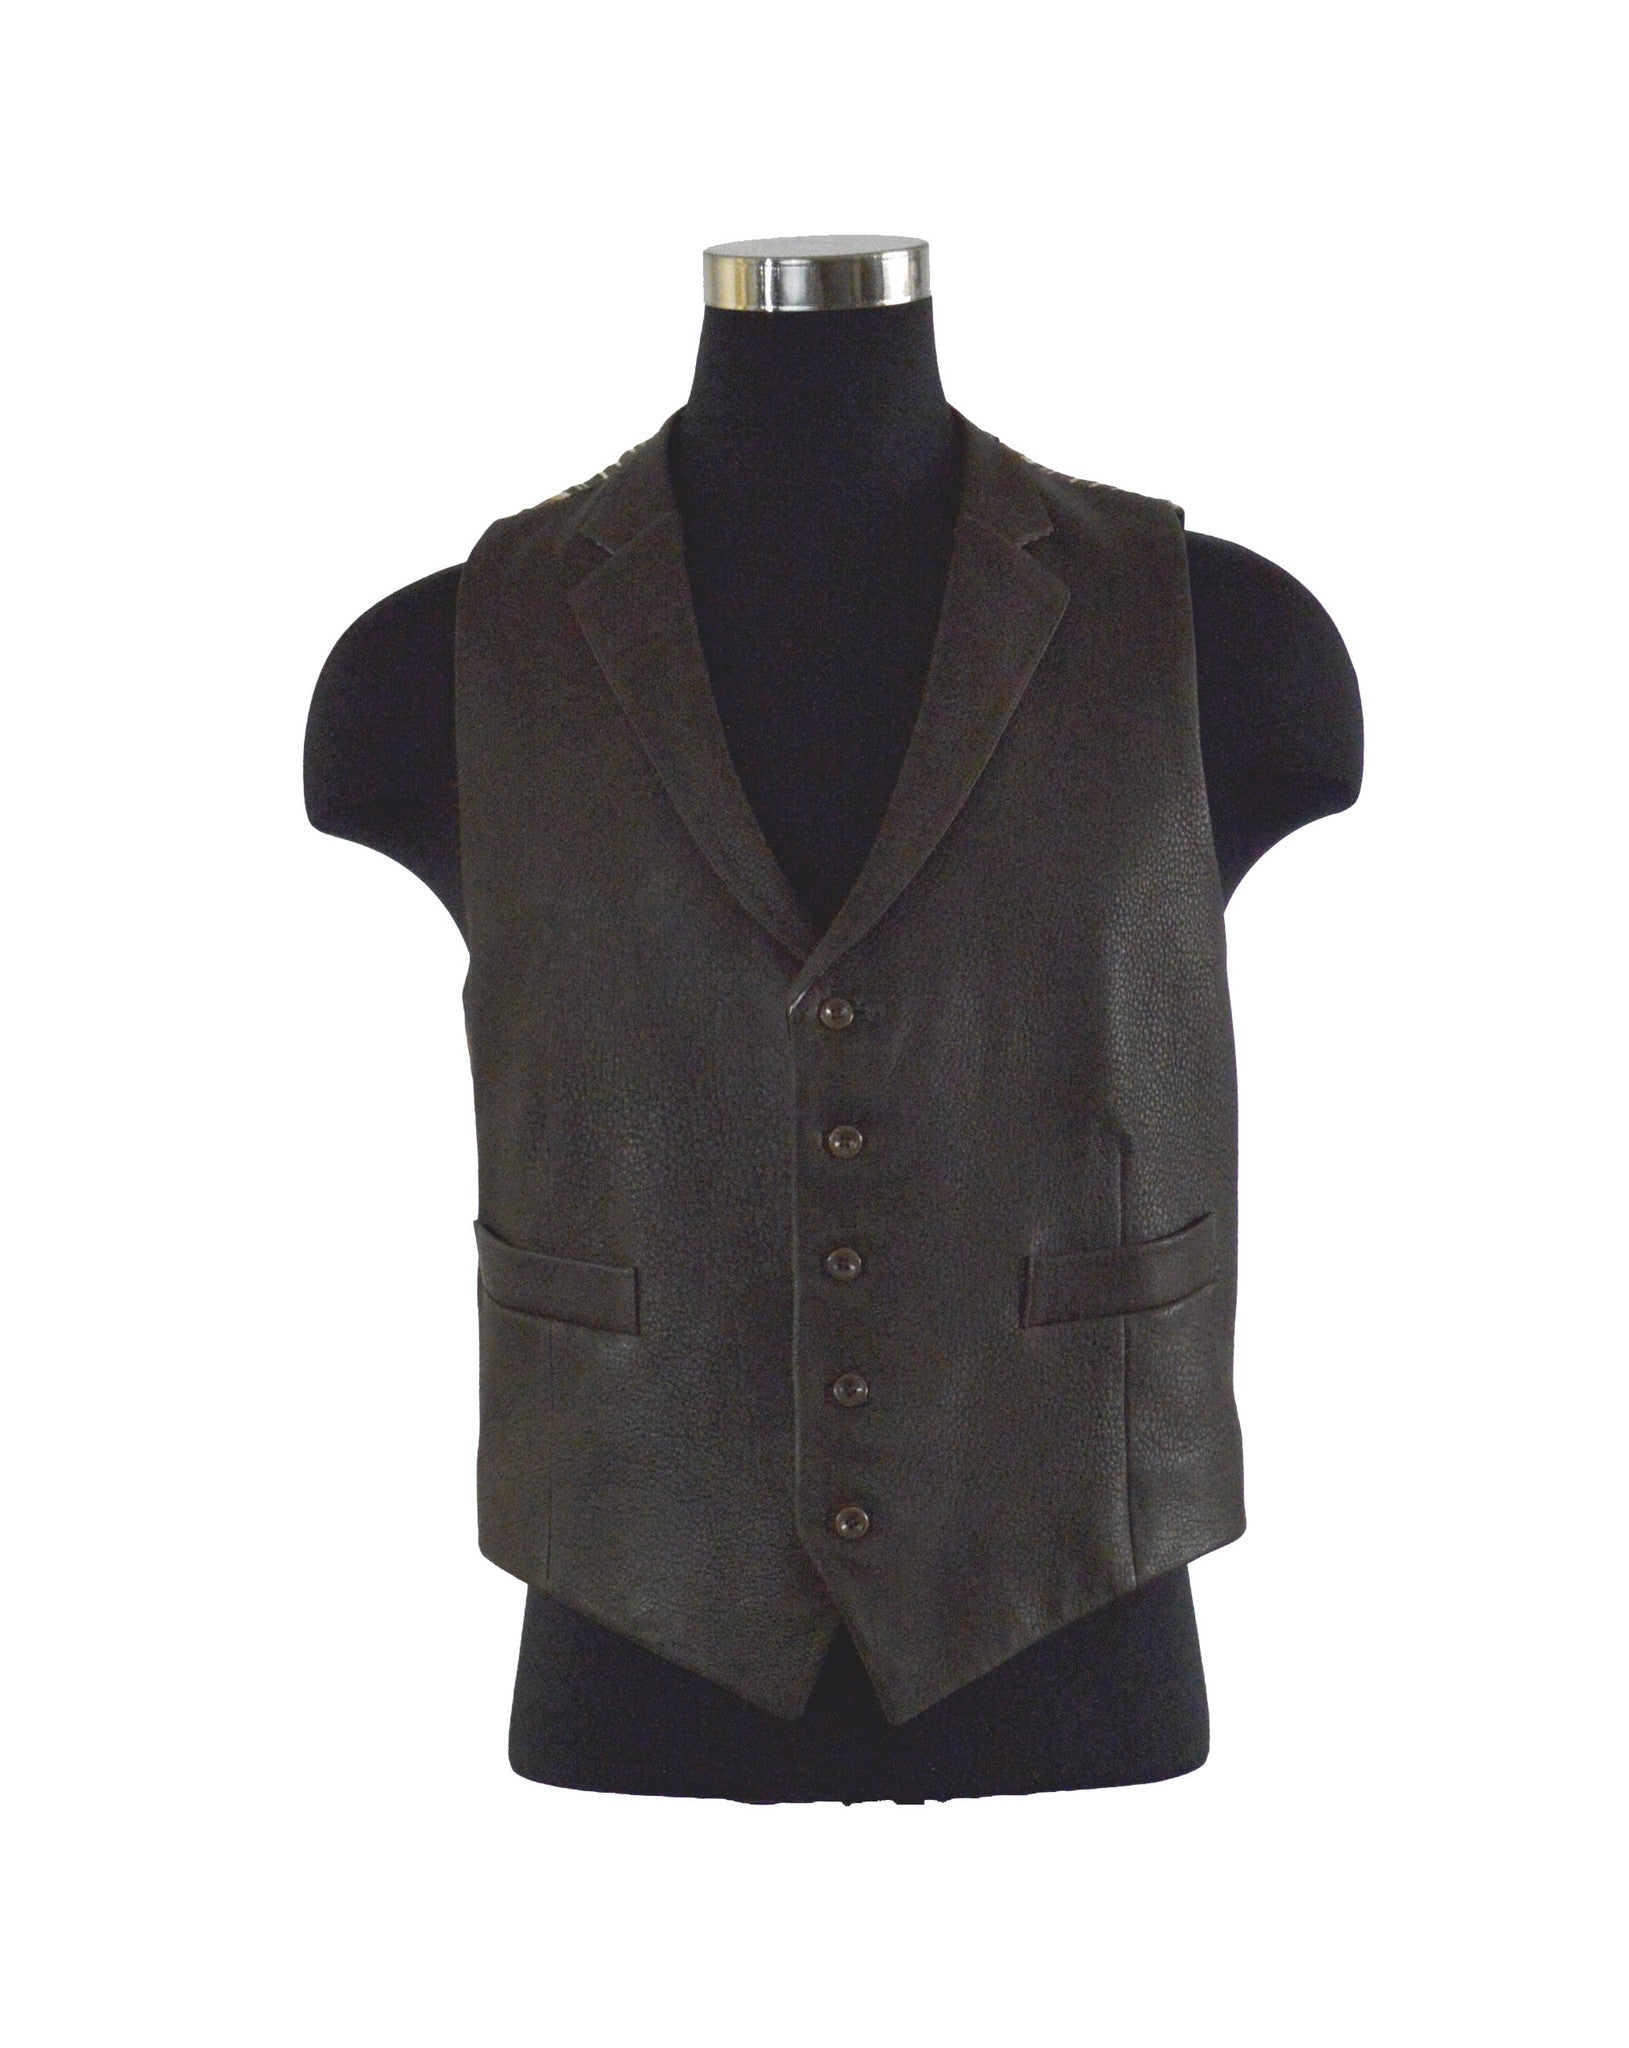 The Tala Deerskin Vest